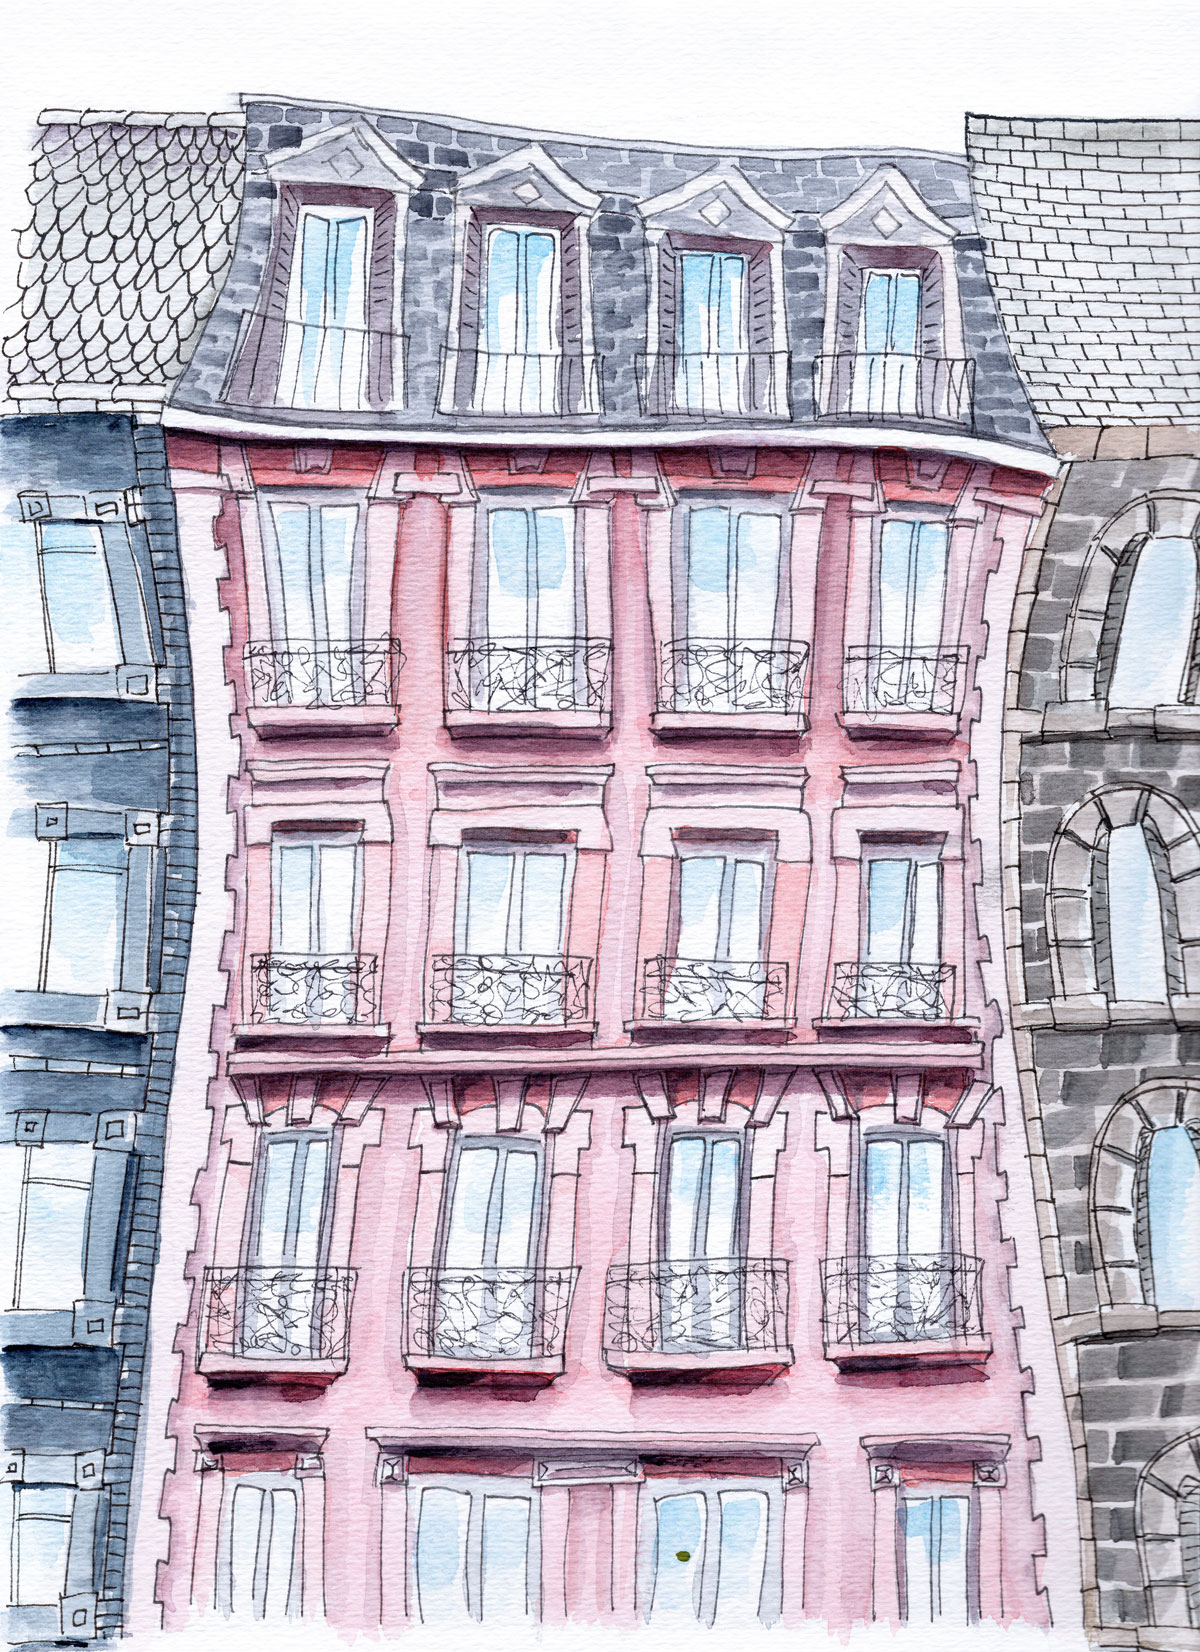 Where balconies tell love stories. - TRAVEL | PARIS, FRANCEA whimsical façade in the city of Love.